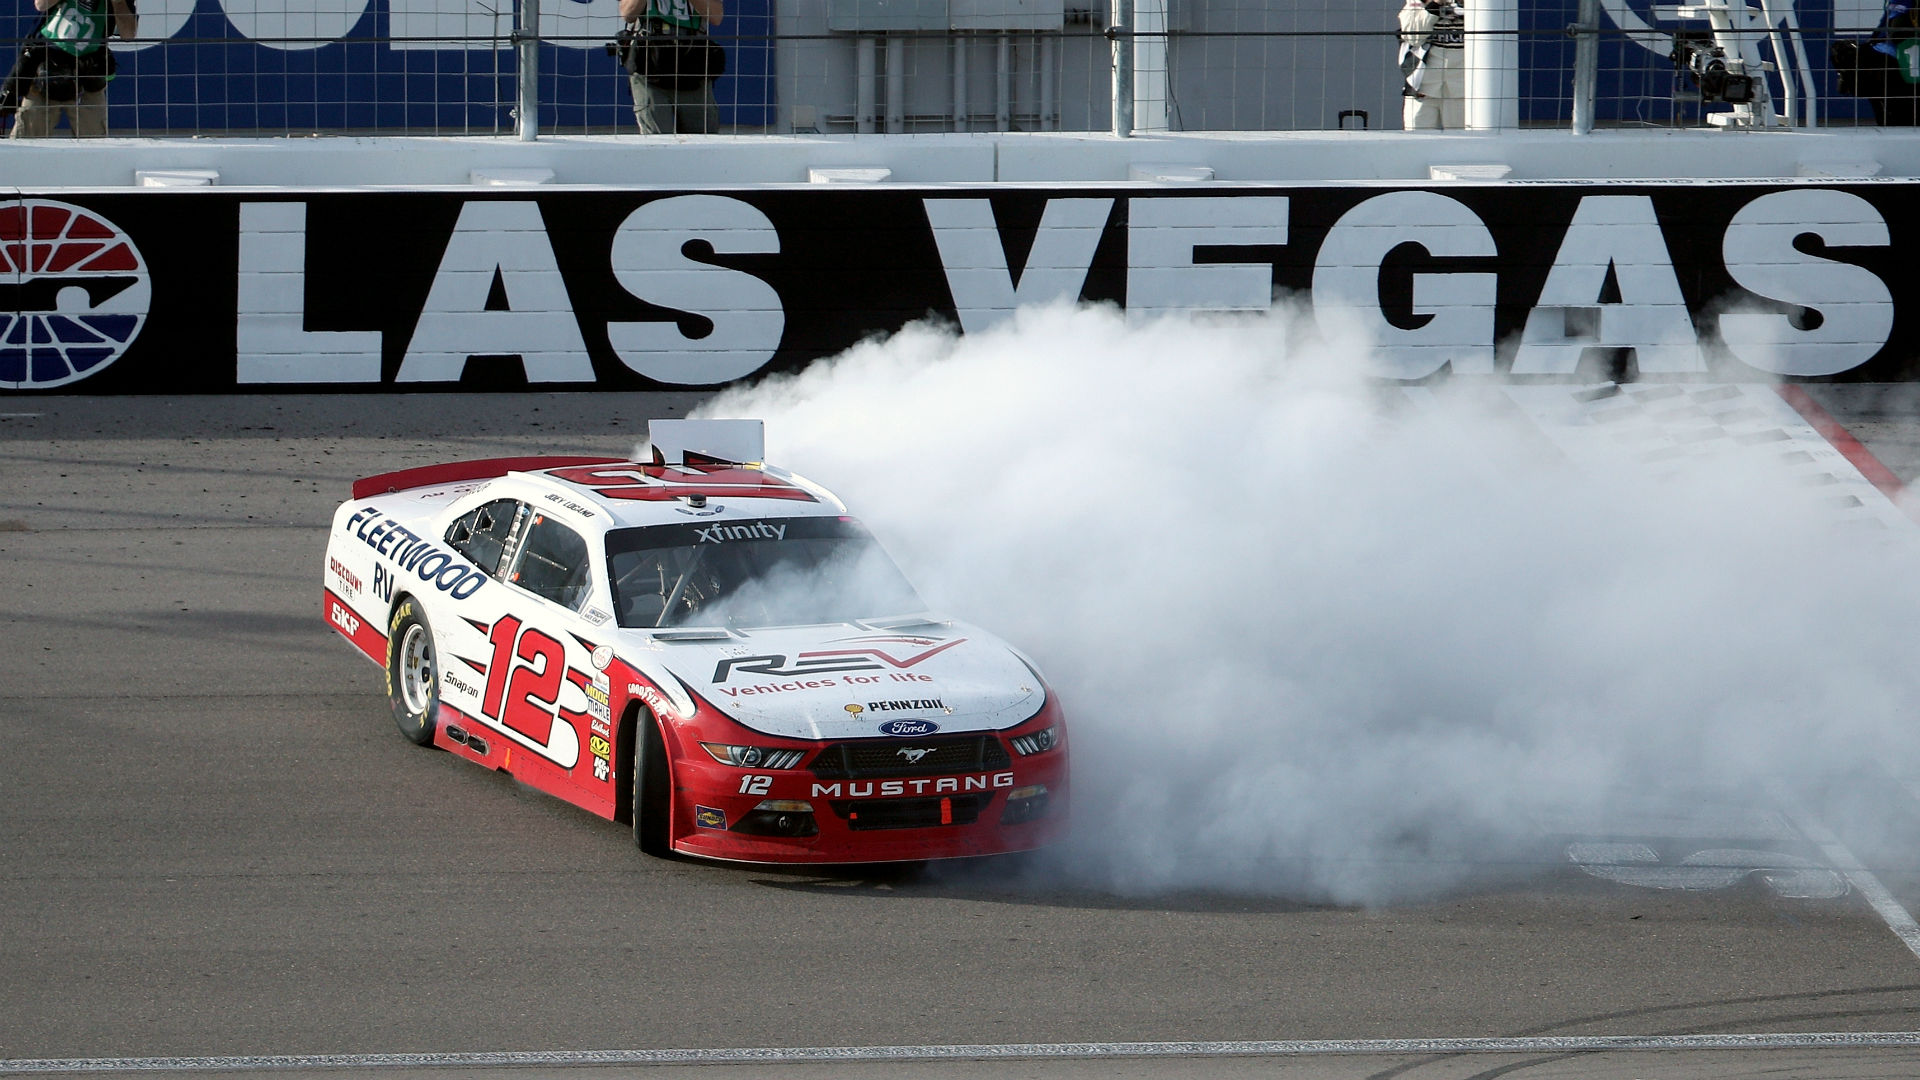 Truex wins at Vegas, Busch and Logano brawl